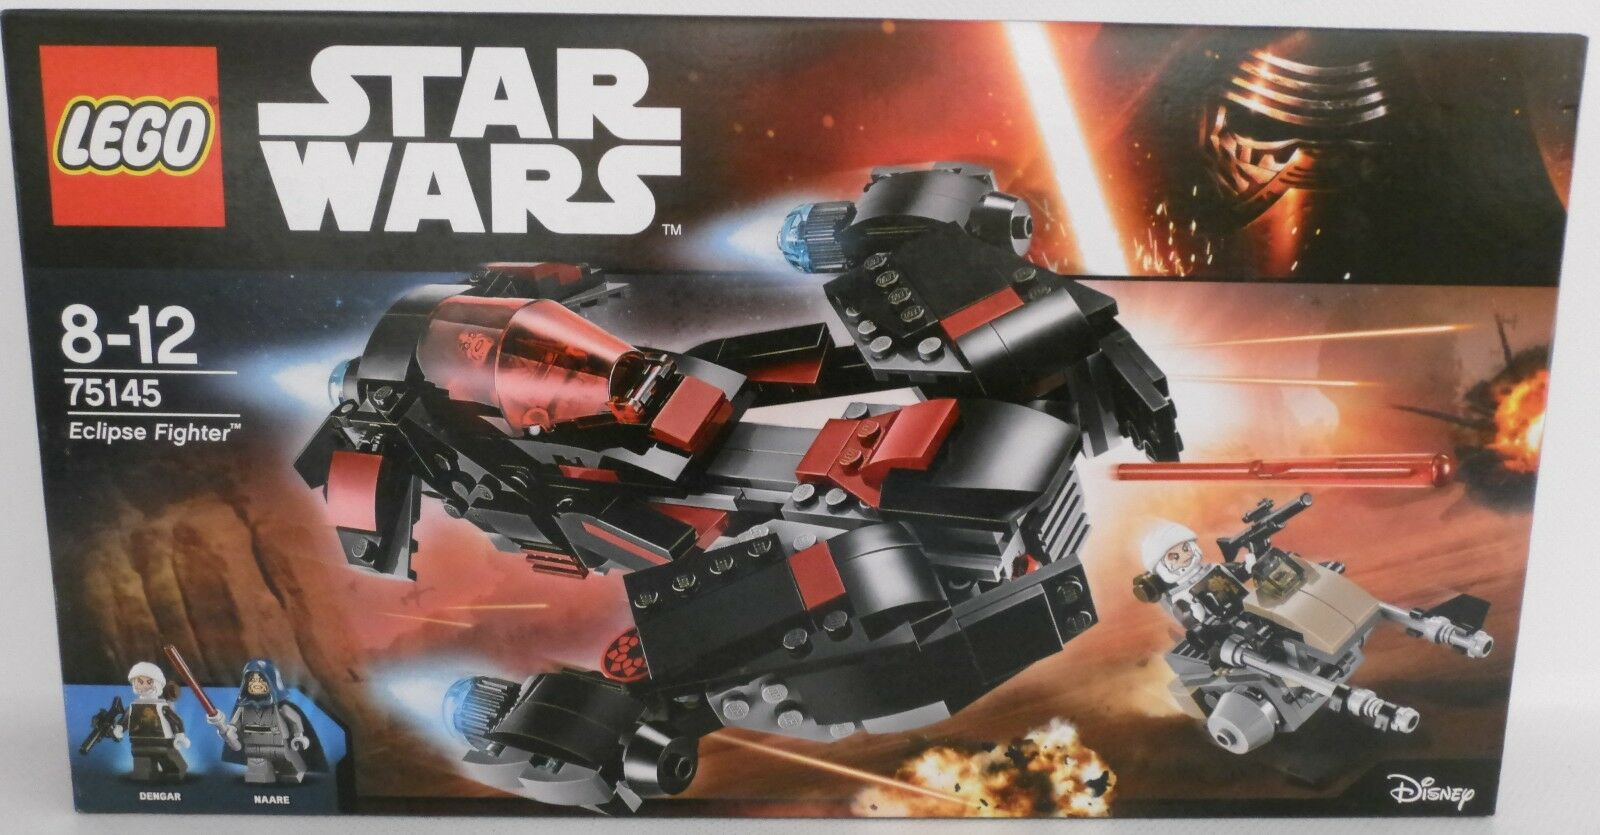 NEU LEGO® Star Wars™ 75145 Eclipse Fighter™ OVP